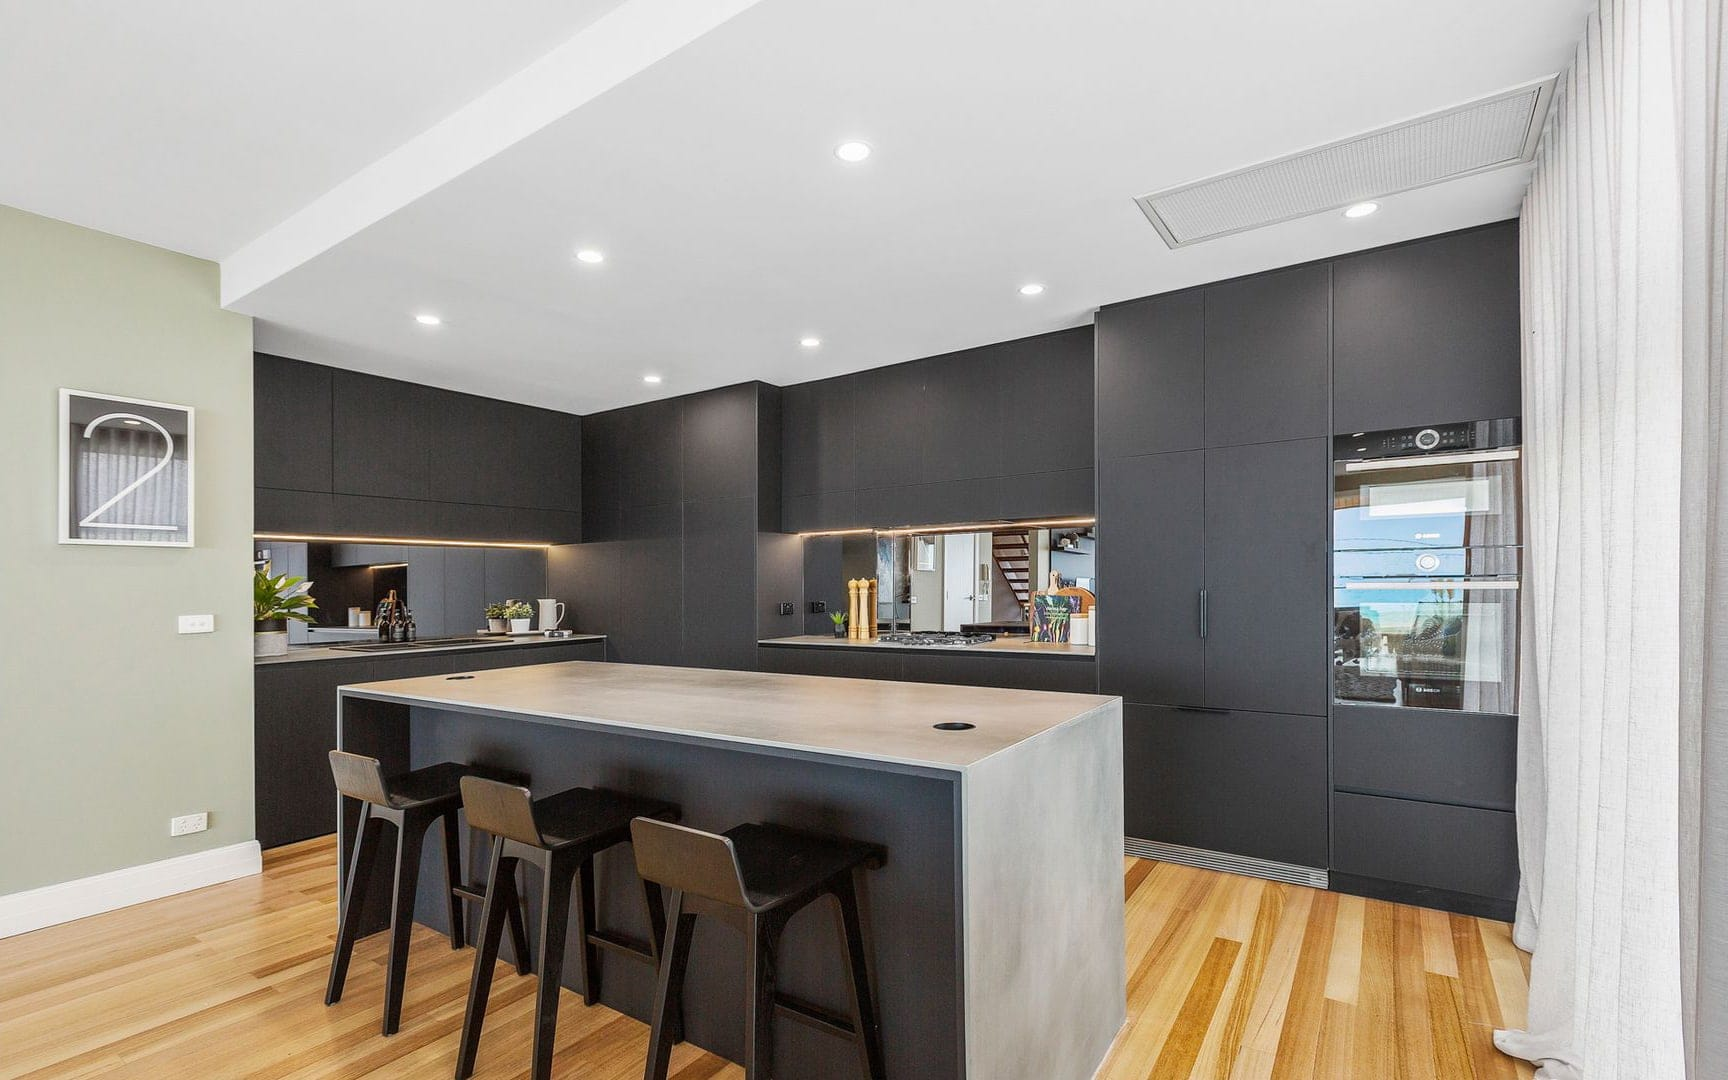 industrial kitchen design with black laminex cabinetry grey stone countertops and tinted glass splashback